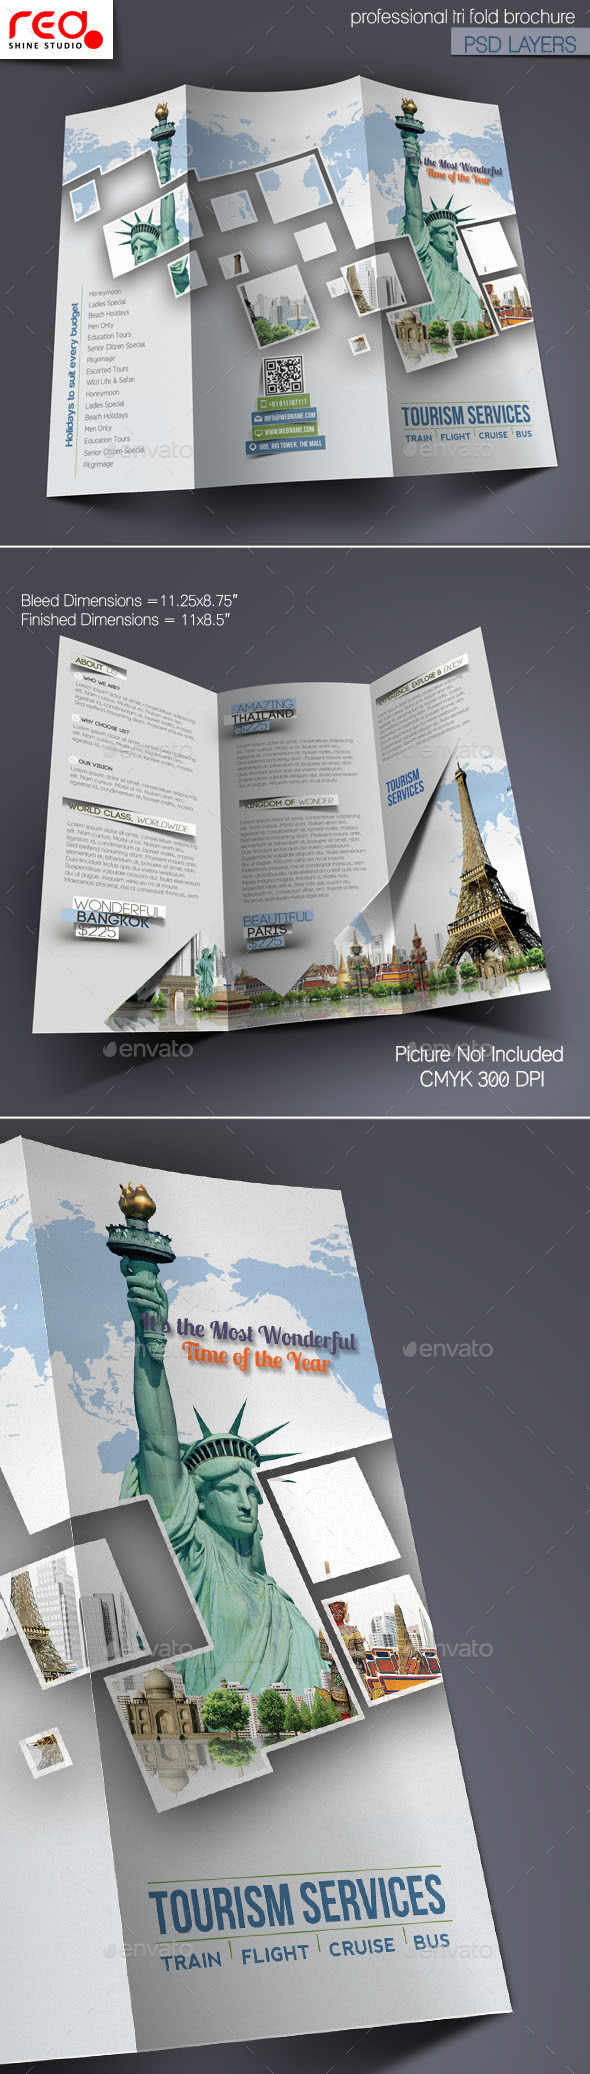 GraphicRiver Tourism Service Trifold Brochure Template 10852167